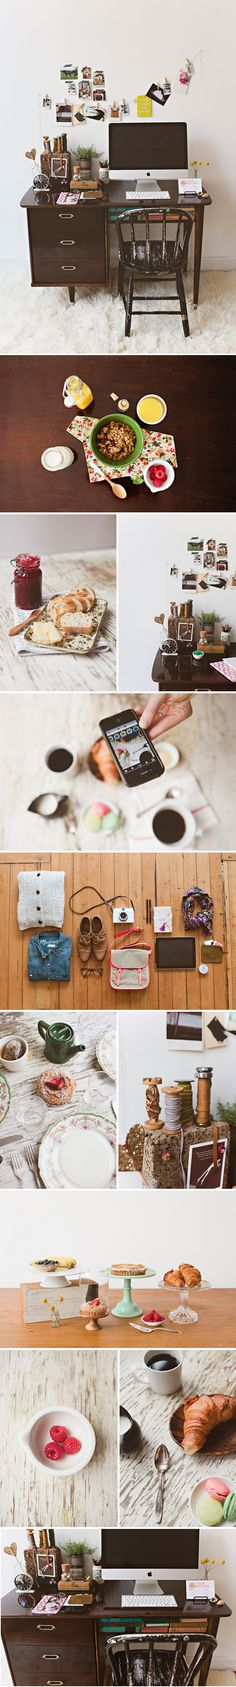 photos from the new Blog Brunch site <3